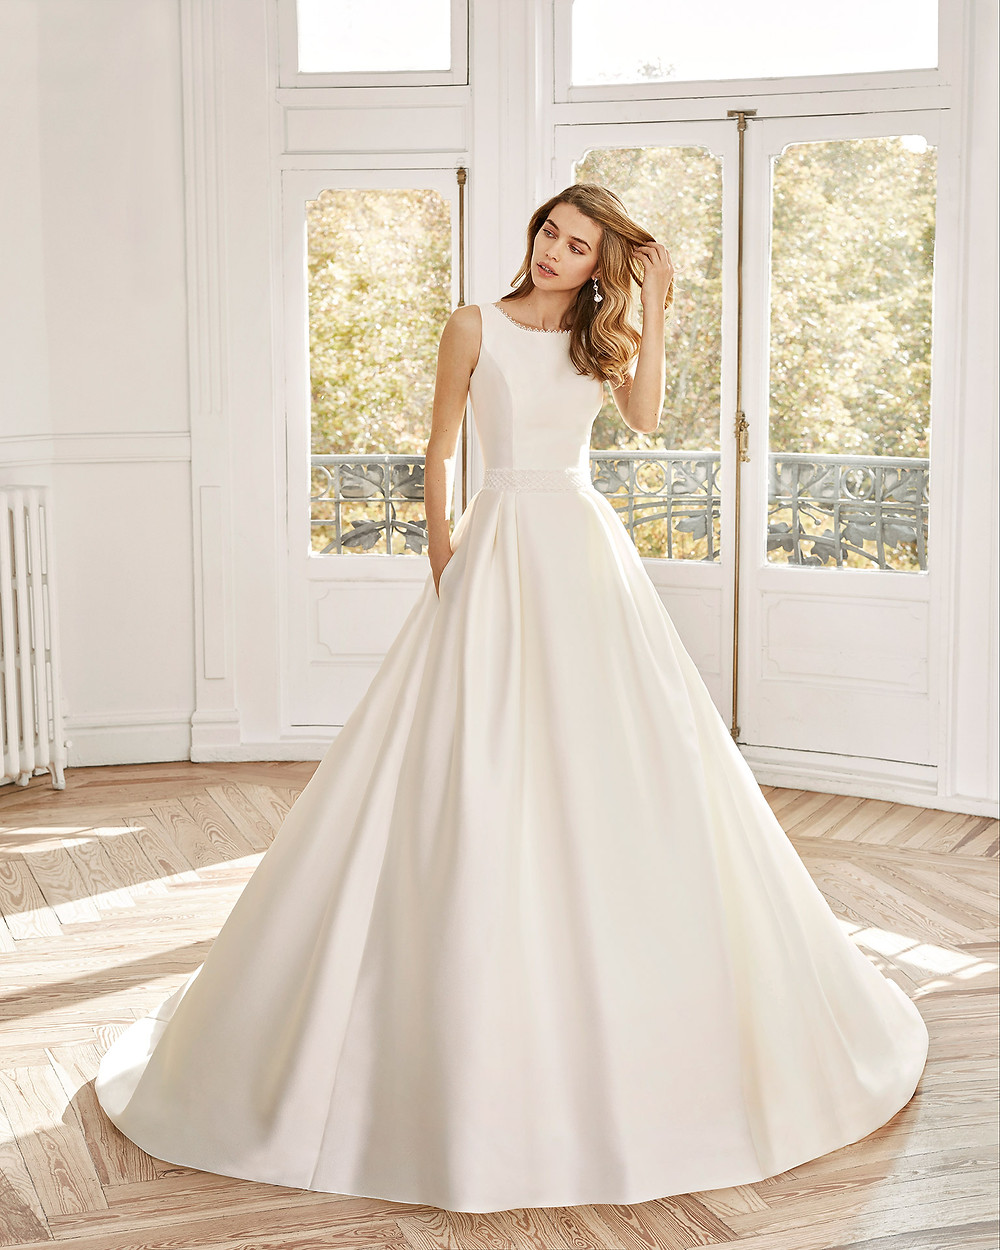 An Aire Barcelona 2020 simple silk ball gown wedding dress with pockets and a high neckline